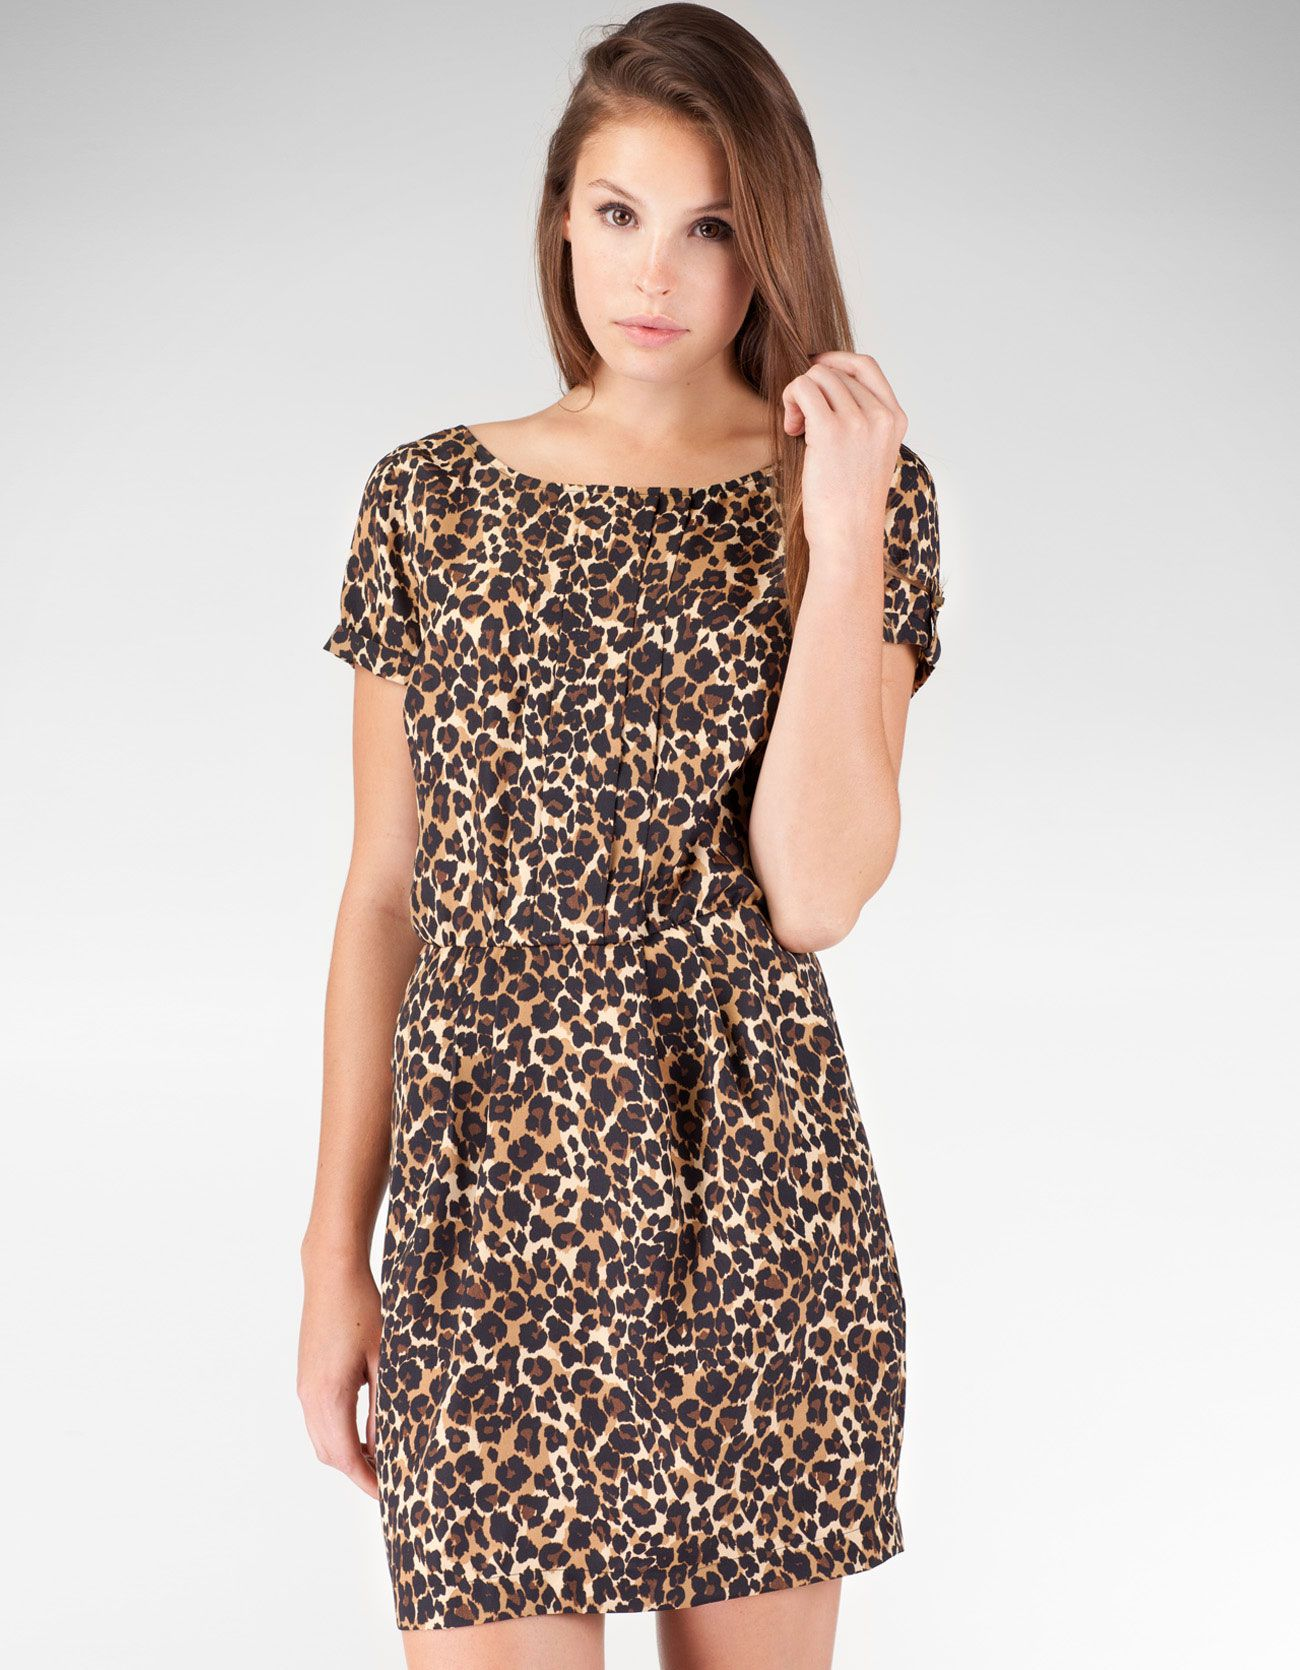 Sukienka animal print | Dresses | Pinterest